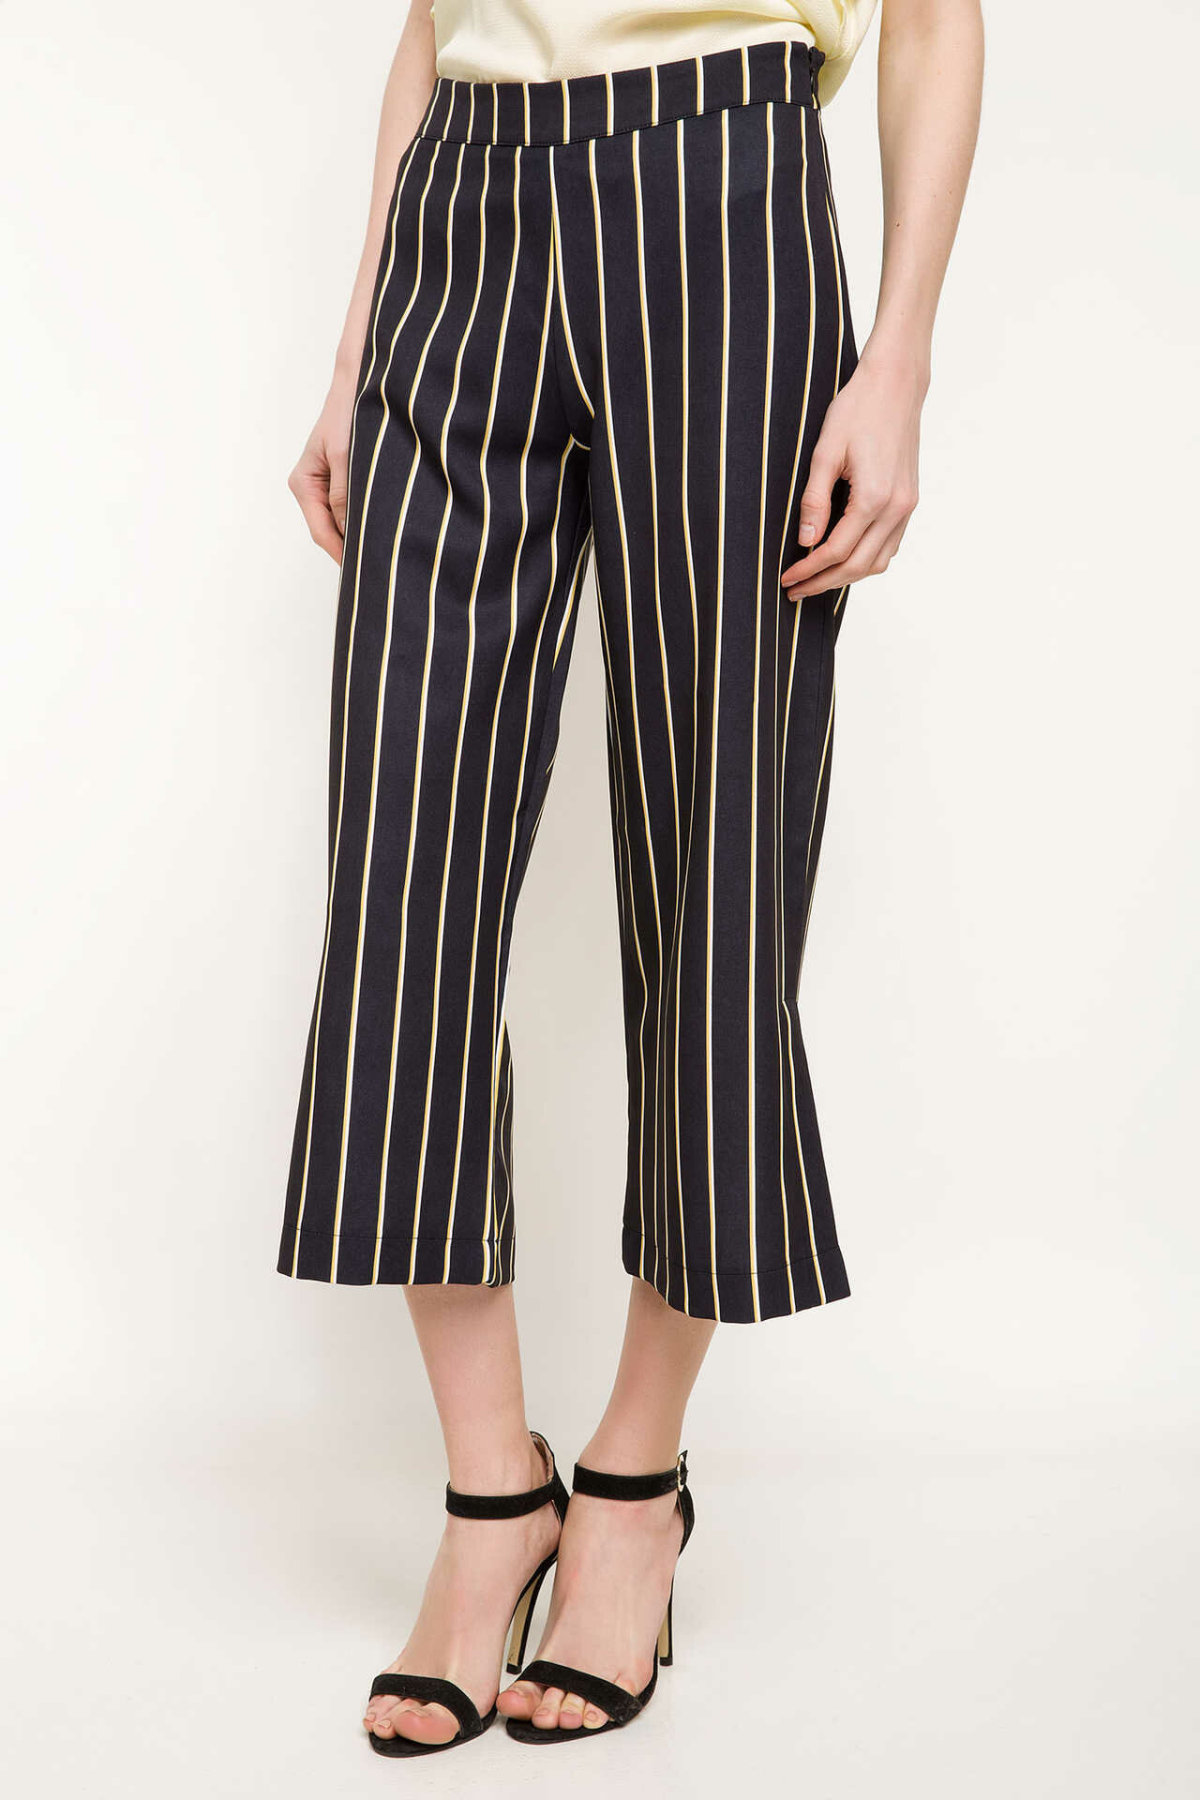 DeFacto Female Fashion Formal Striped Loose Trousers For Ladies Casual Pants Straight Comfort Long Pants Women's - J1122AZ18SP